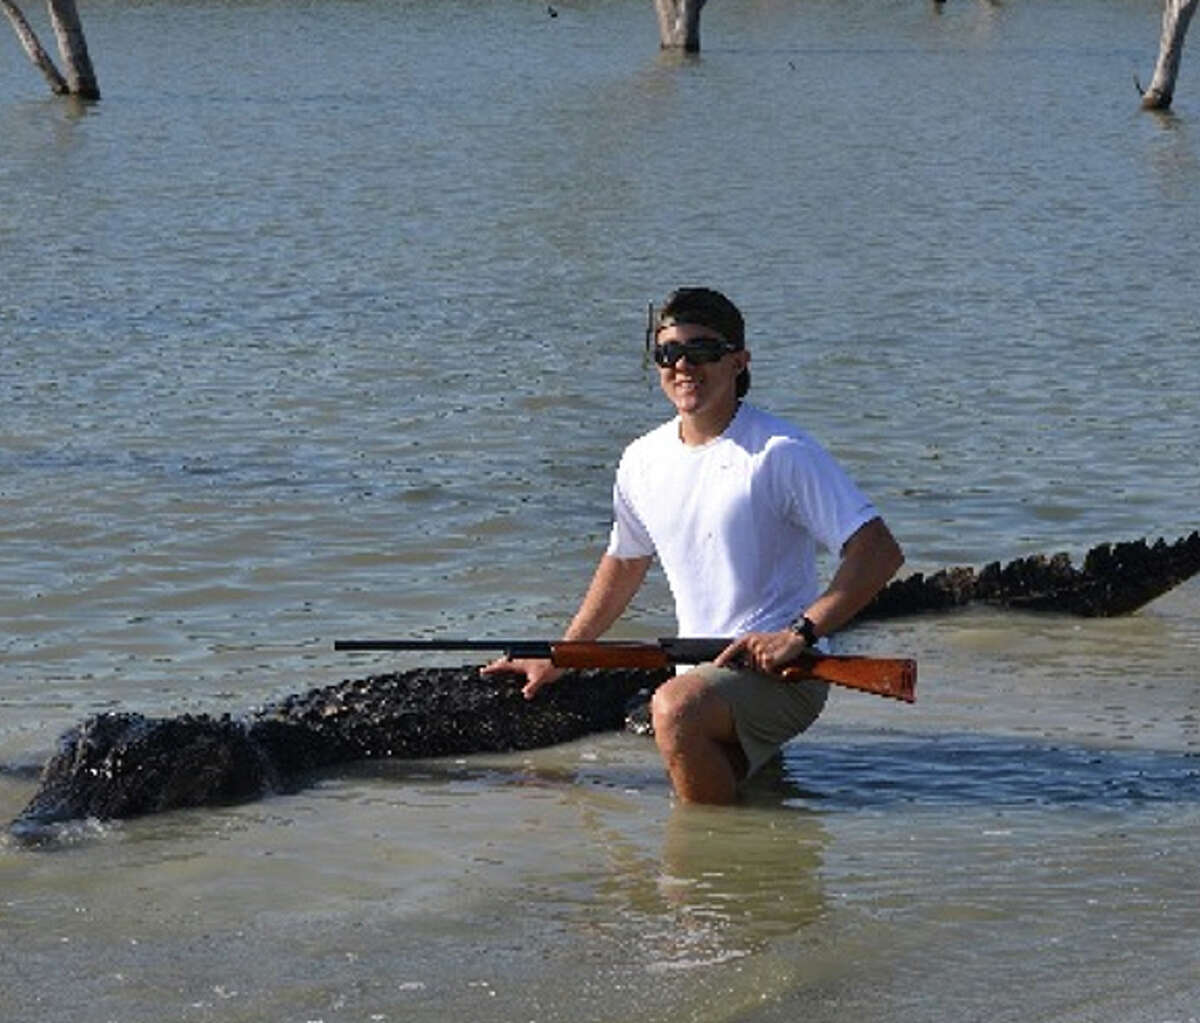 Braxton Bielski caught the record 800-pound alligator using raw chicken as bait during a special state hunt on the Choke Canyon Reservoir, 90 miles south of San Antonio.